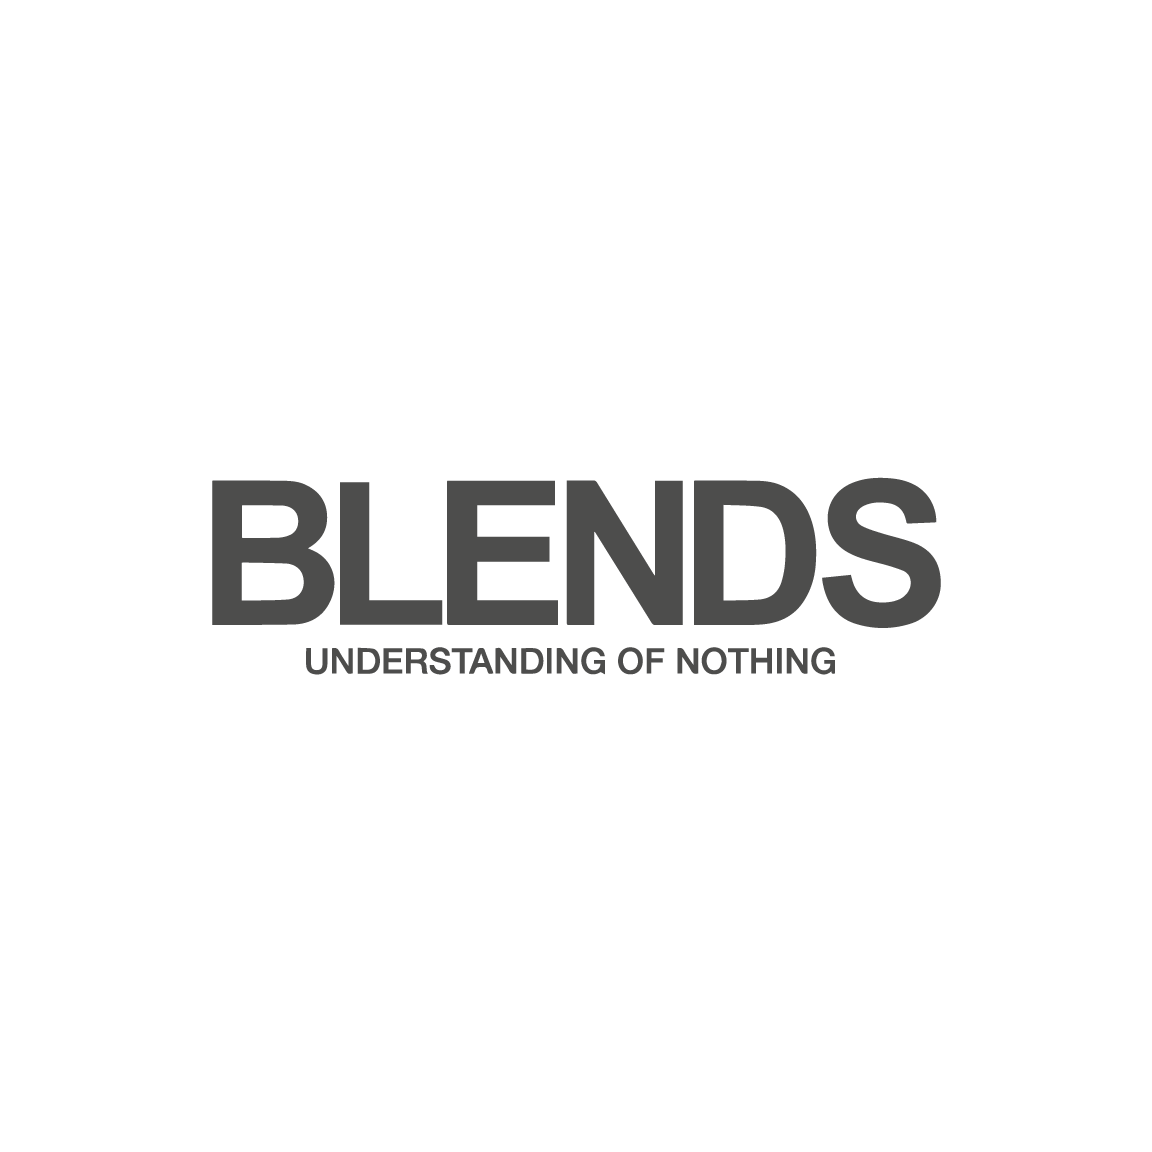 BLENDS.png